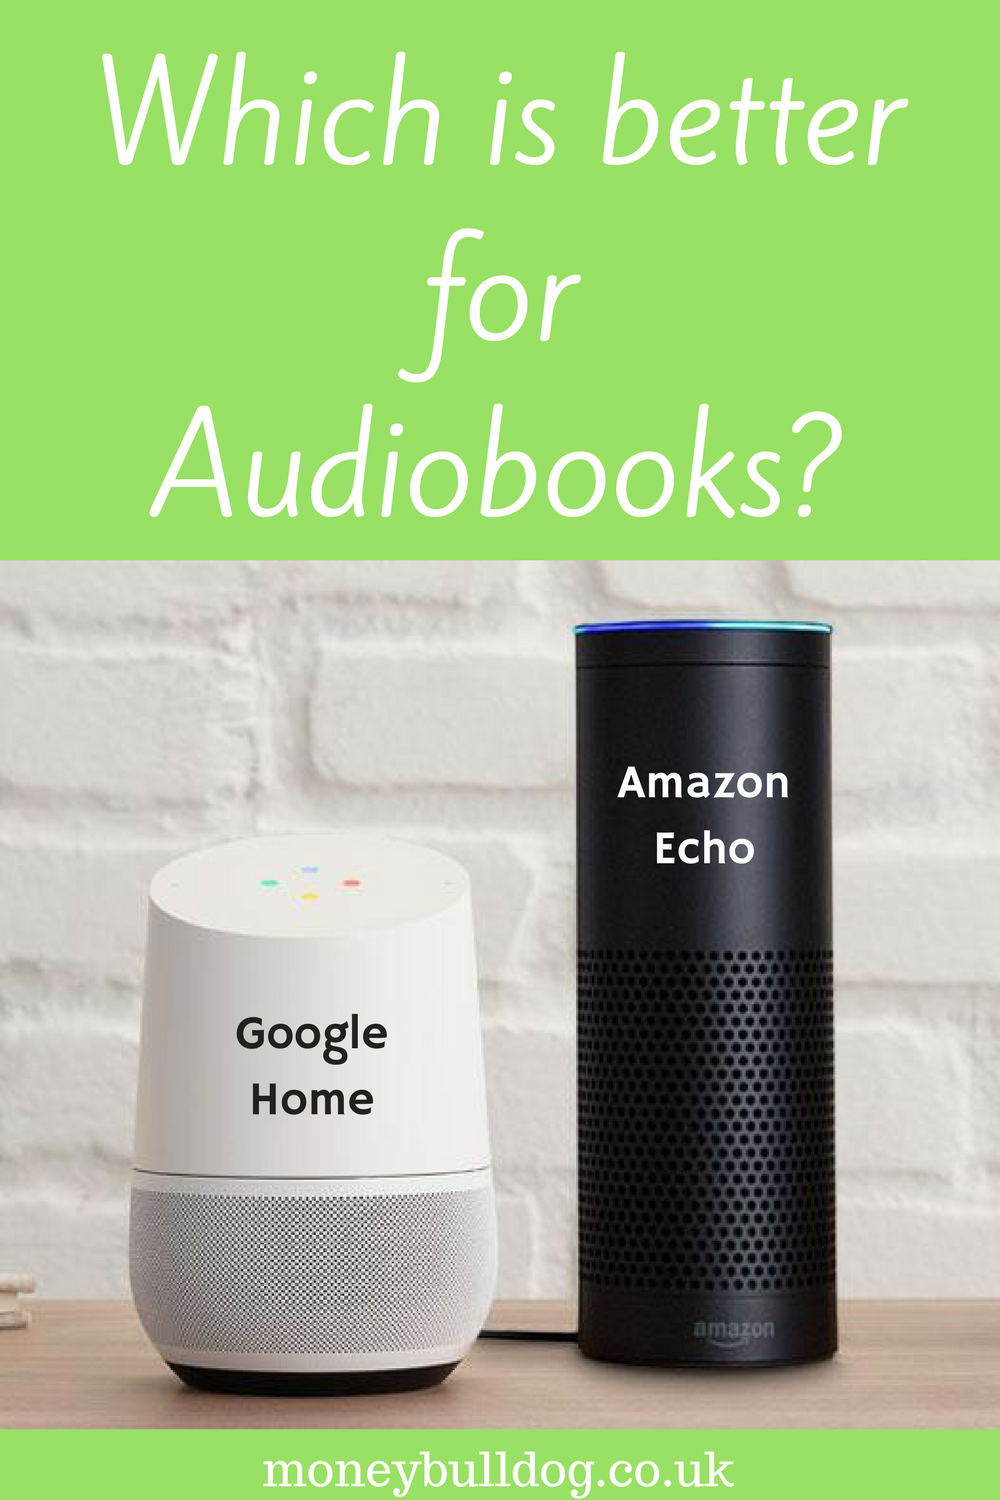 Google Home and Amazon Echo next to each other with question 'which is better for audiobooks'